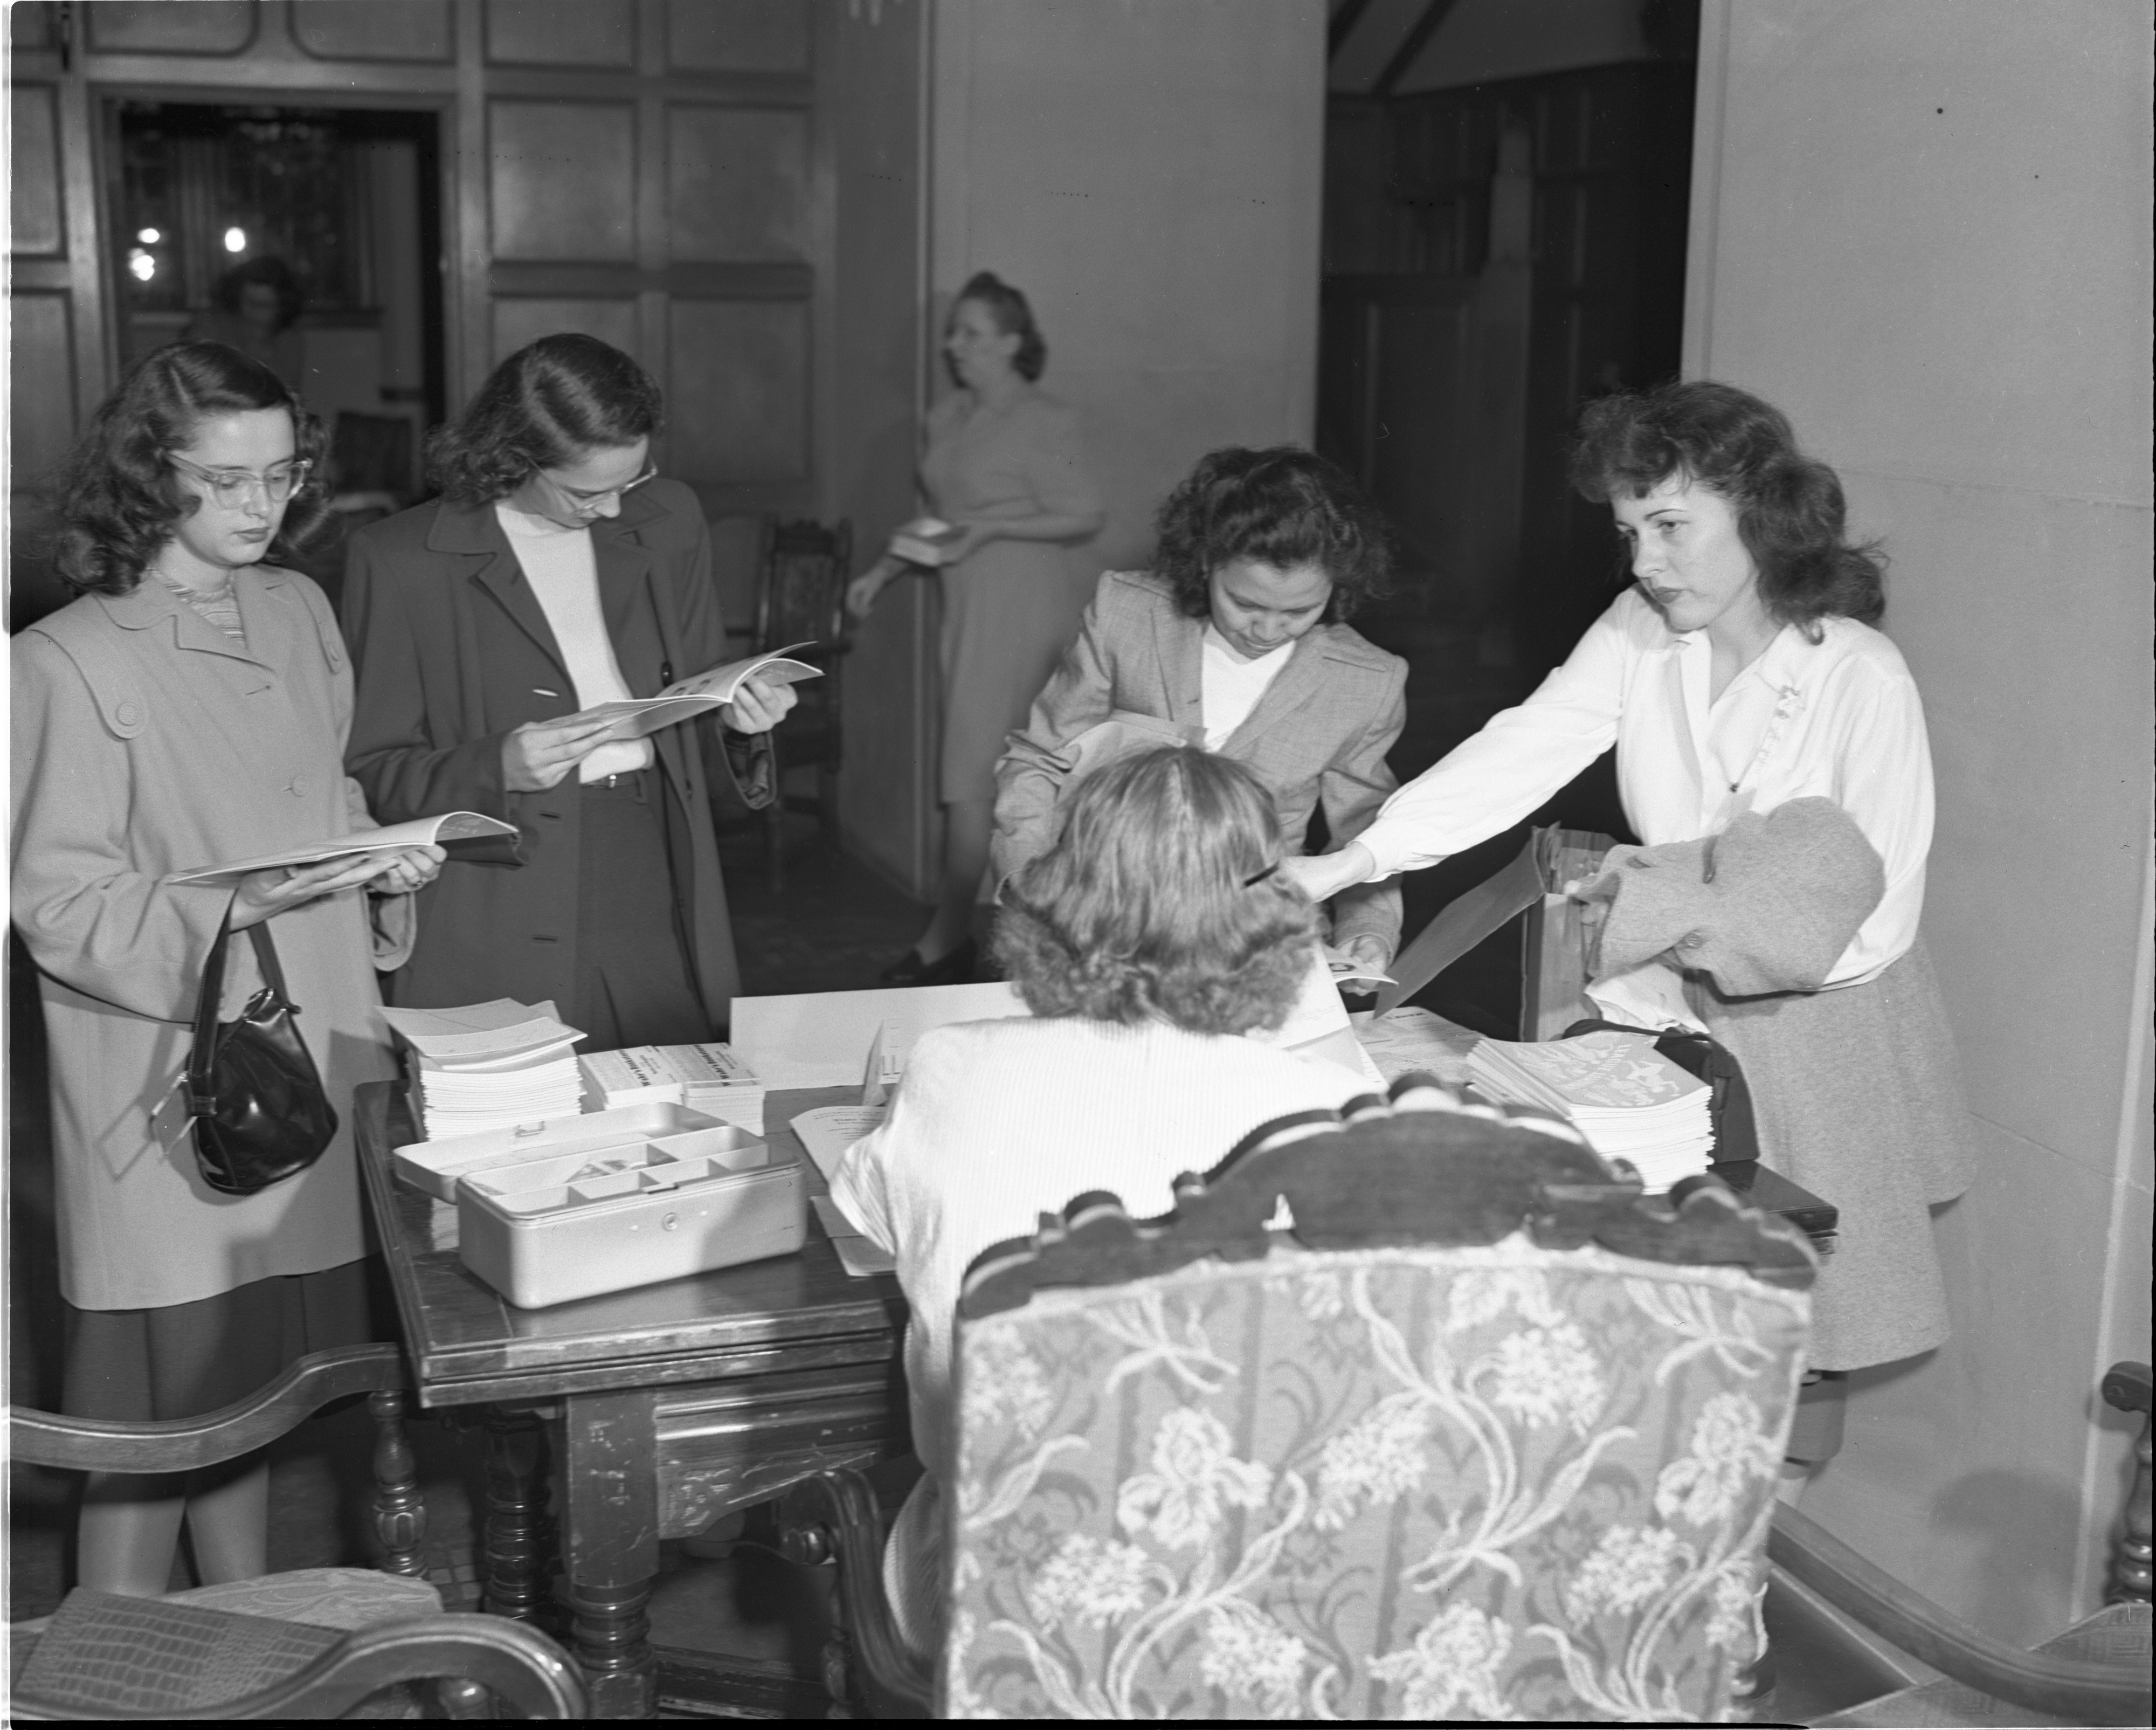 New University Of Michigan Students Visit A Freshman Information Center At The Michigan League, September 1947 image